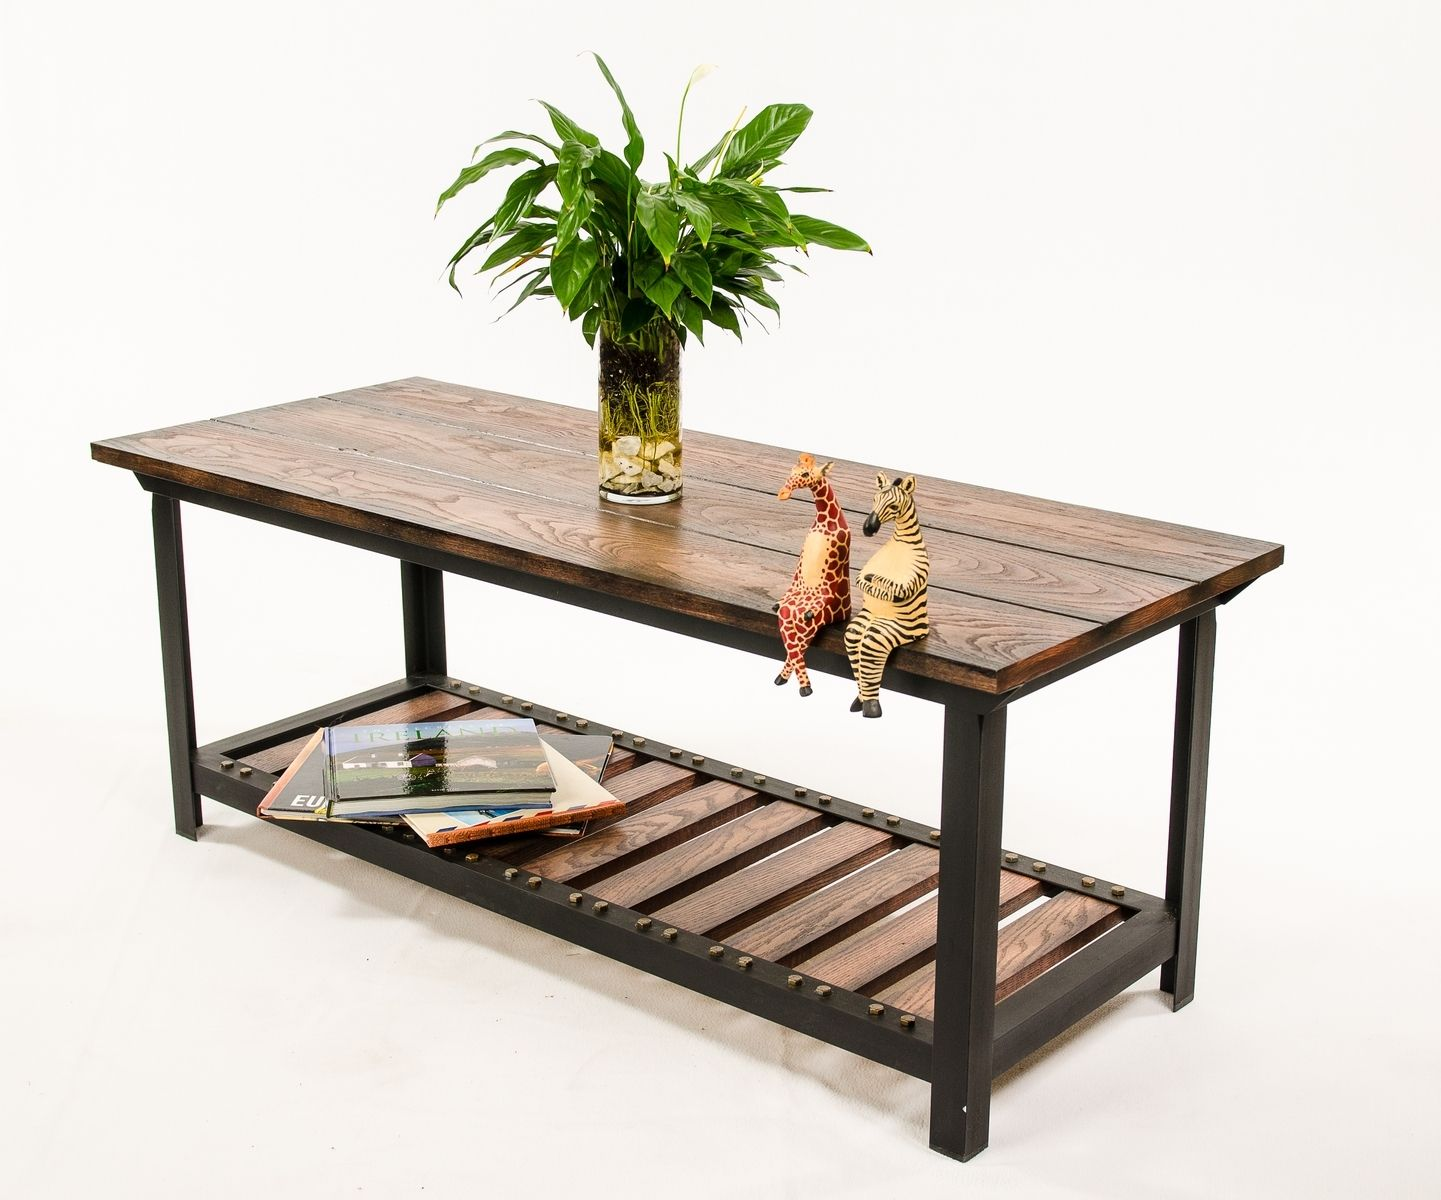 custom made vintage industrial style coffee table by. Black Bedroom Furniture Sets. Home Design Ideas